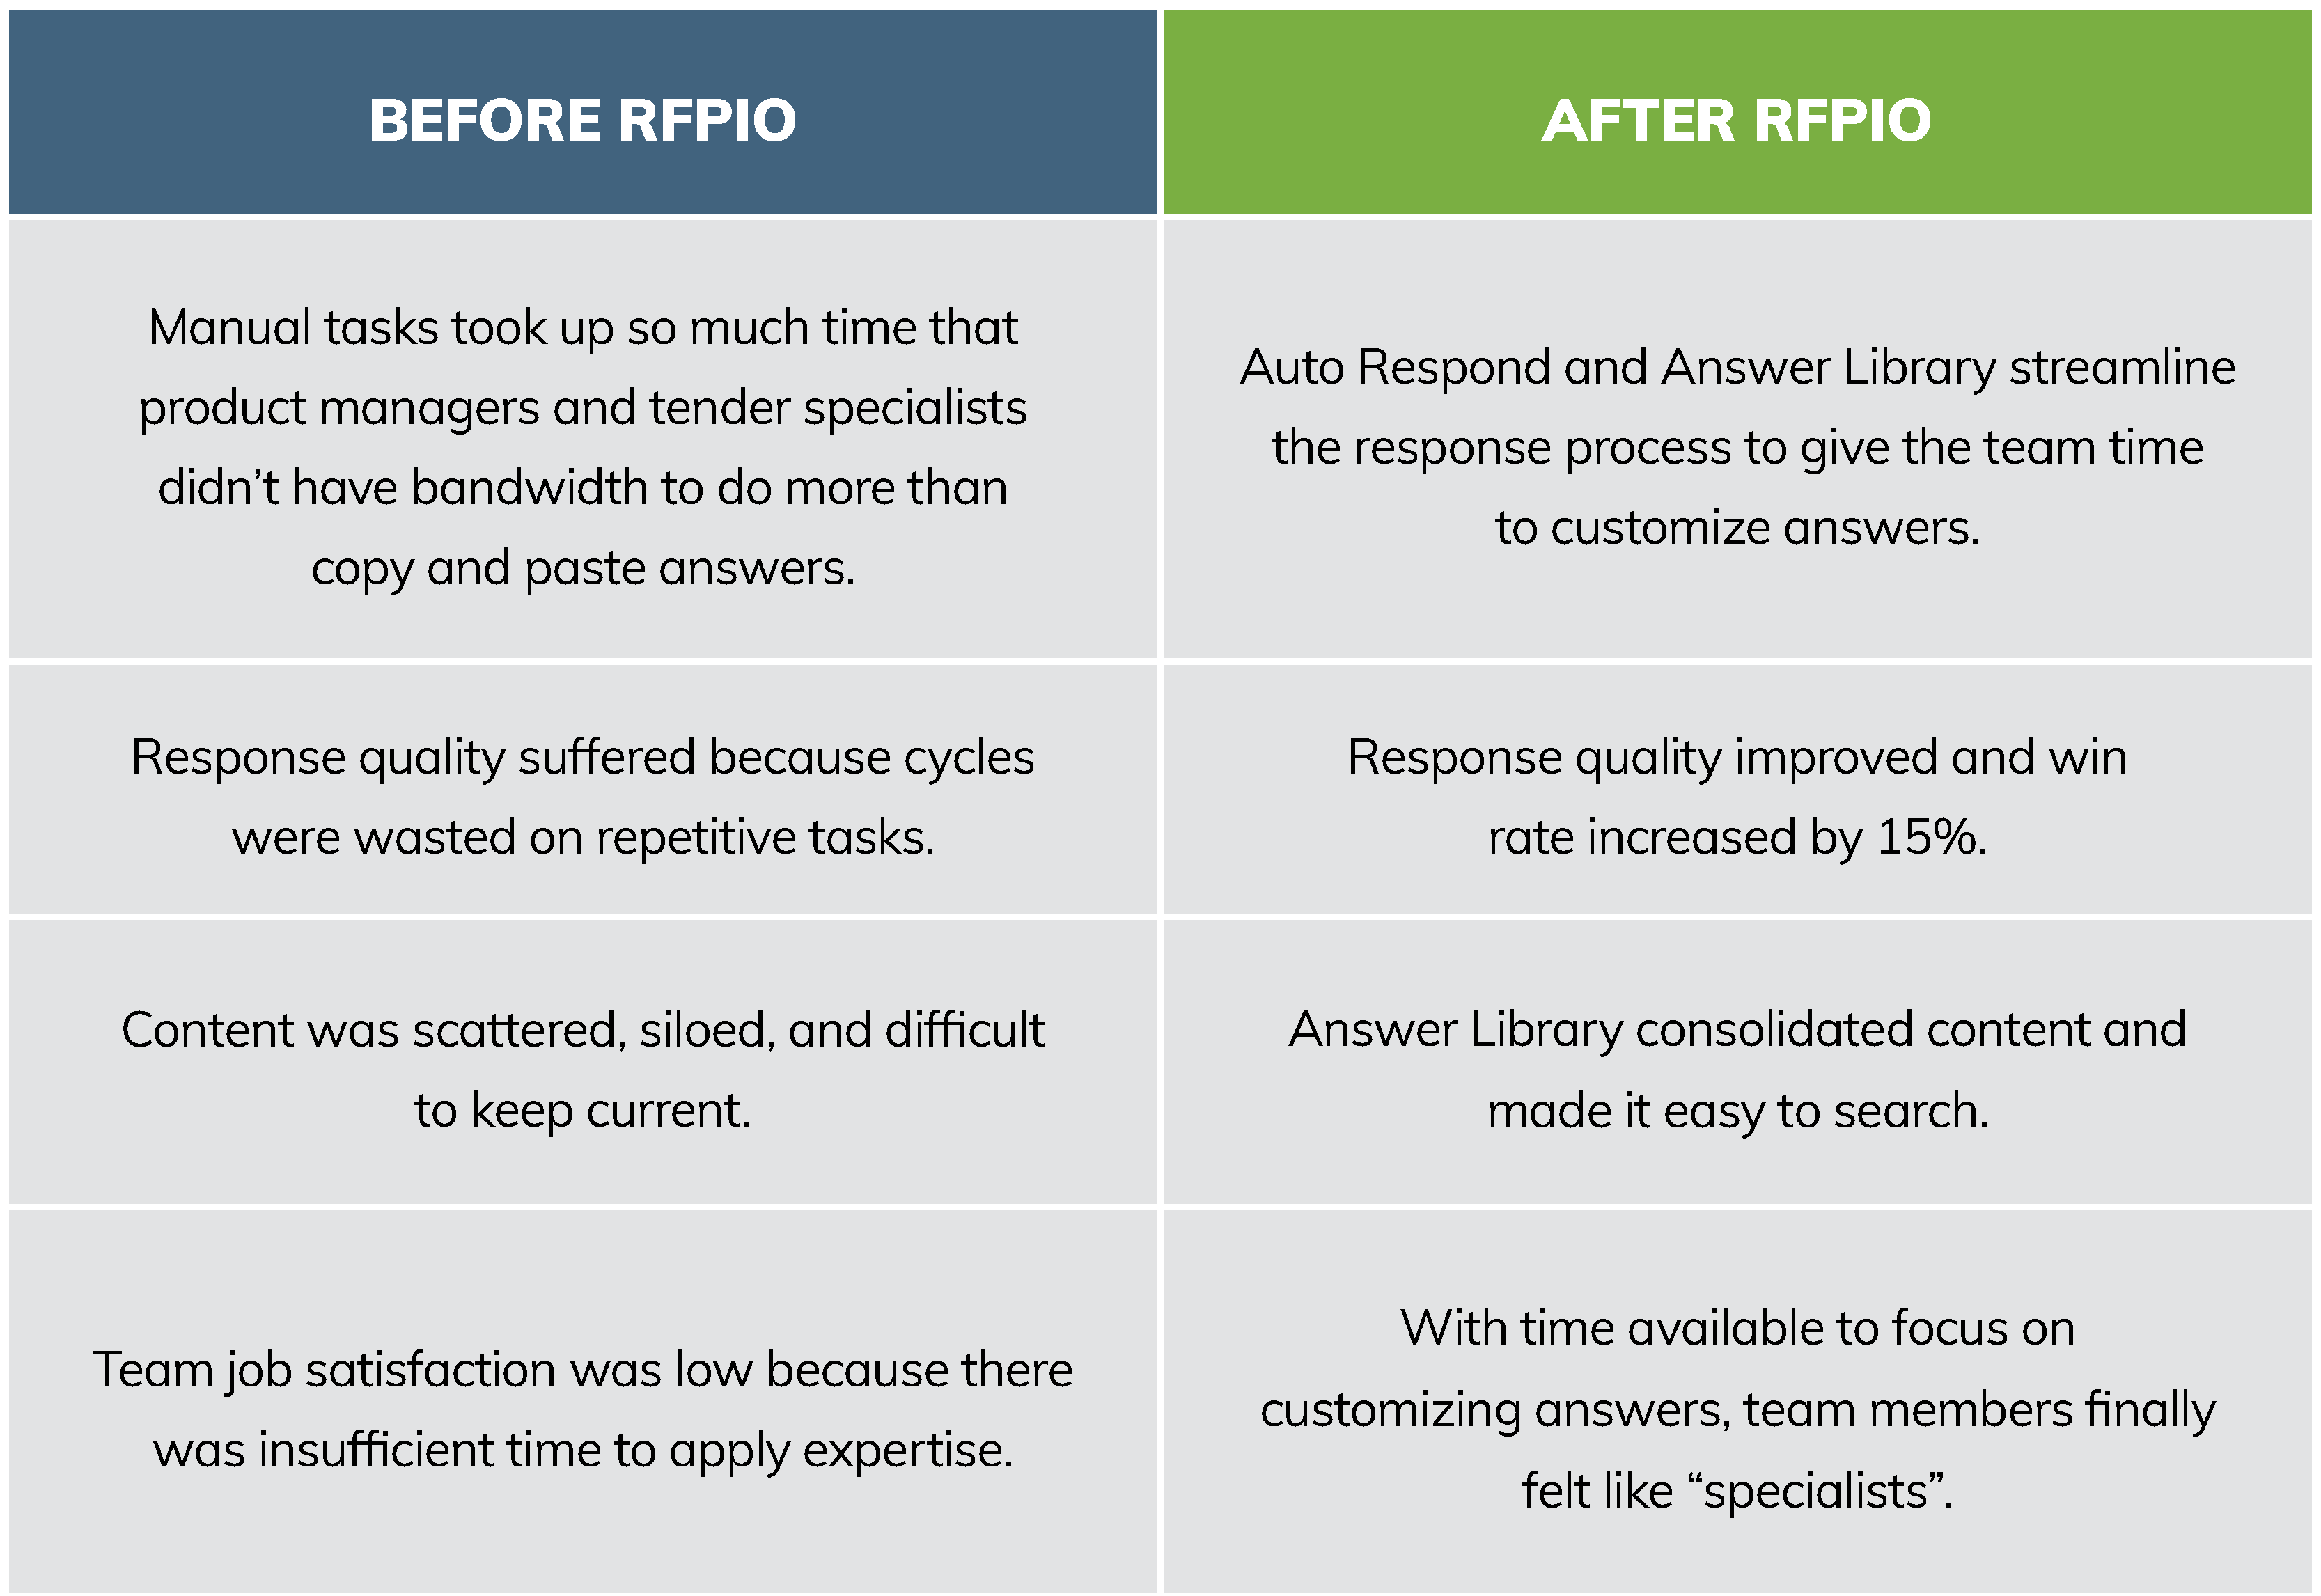 IBA improved proposal quality and increased win rate by 15% with RFPIO